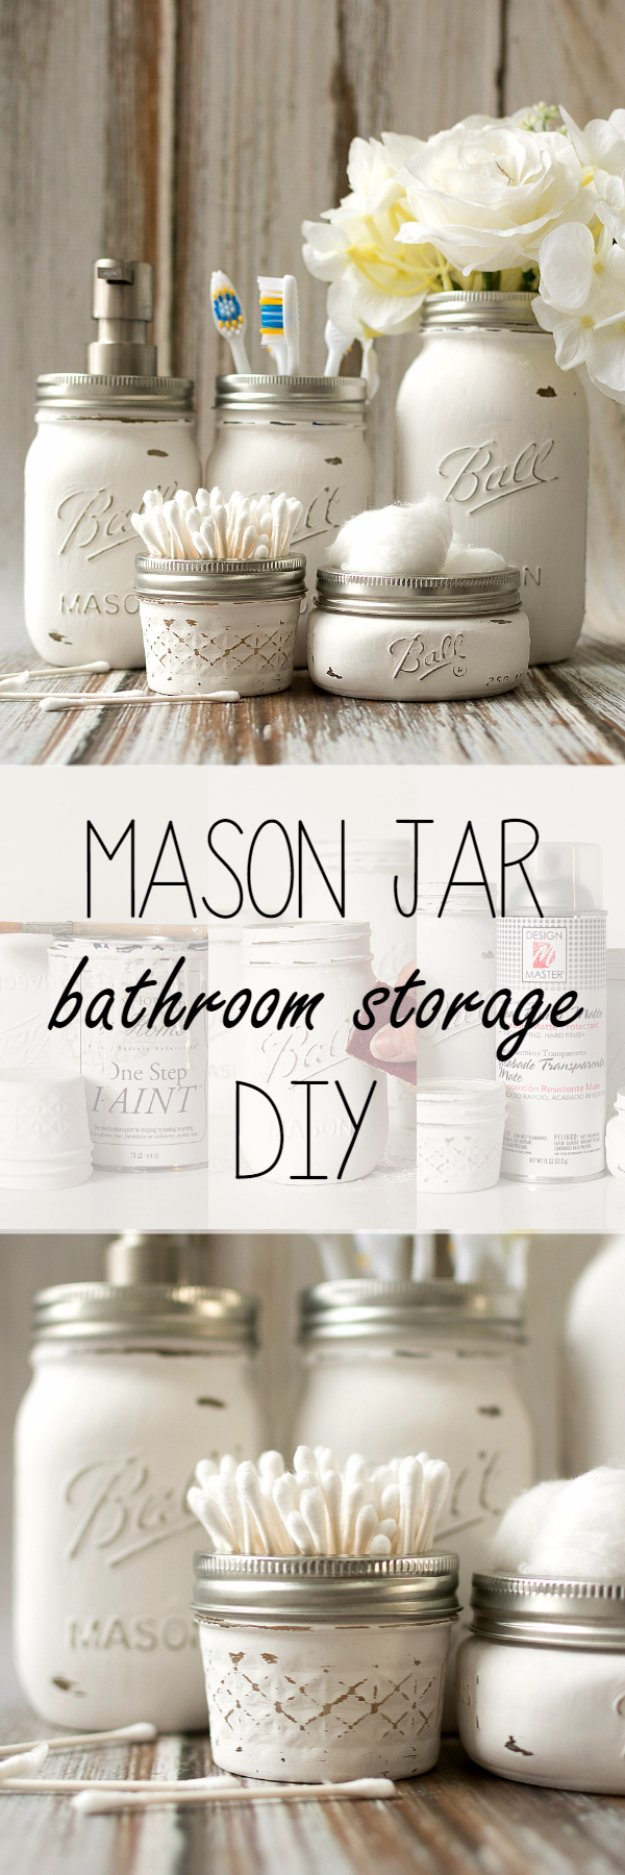 Exquisite Your Bathroom Diy Decor Ideas Diy Bathroom Decor Ideas Mason Jar Bathroom Storage Accessories Doit Yourself Bath Diy Decor Ideas Diwali Diy Decor Ideas Living Room home decor Diy Decor Ideas